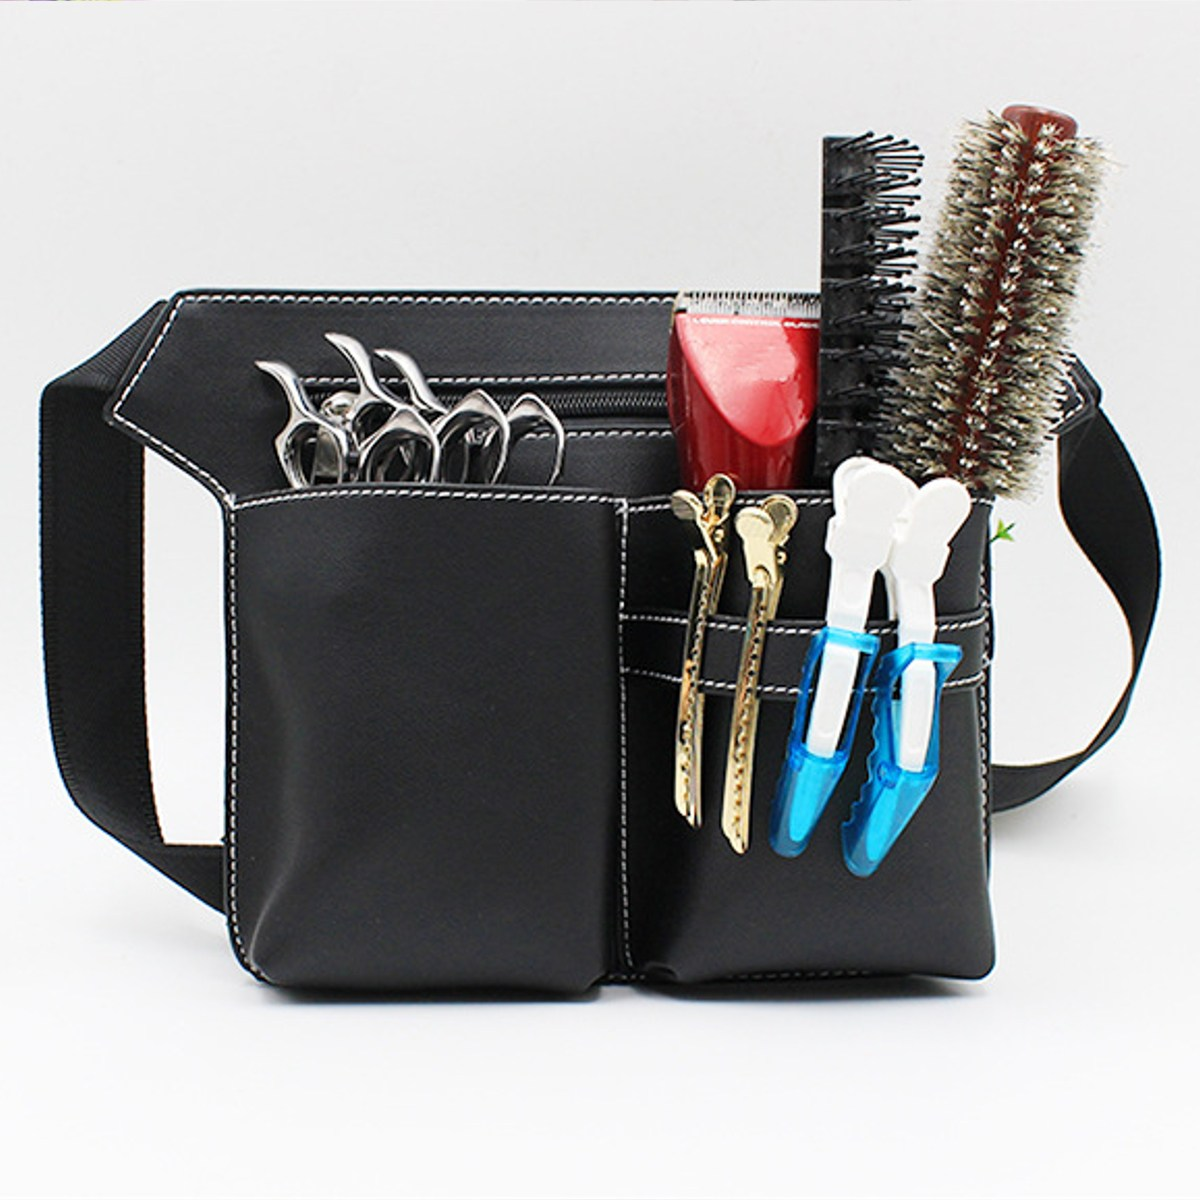 AEQUEEN Professional Salon Hair Scissor Bag PU Scissor Clip Shear Bags Tool Hairdressing Holster Pouch Holder Case Belt Tool Bag